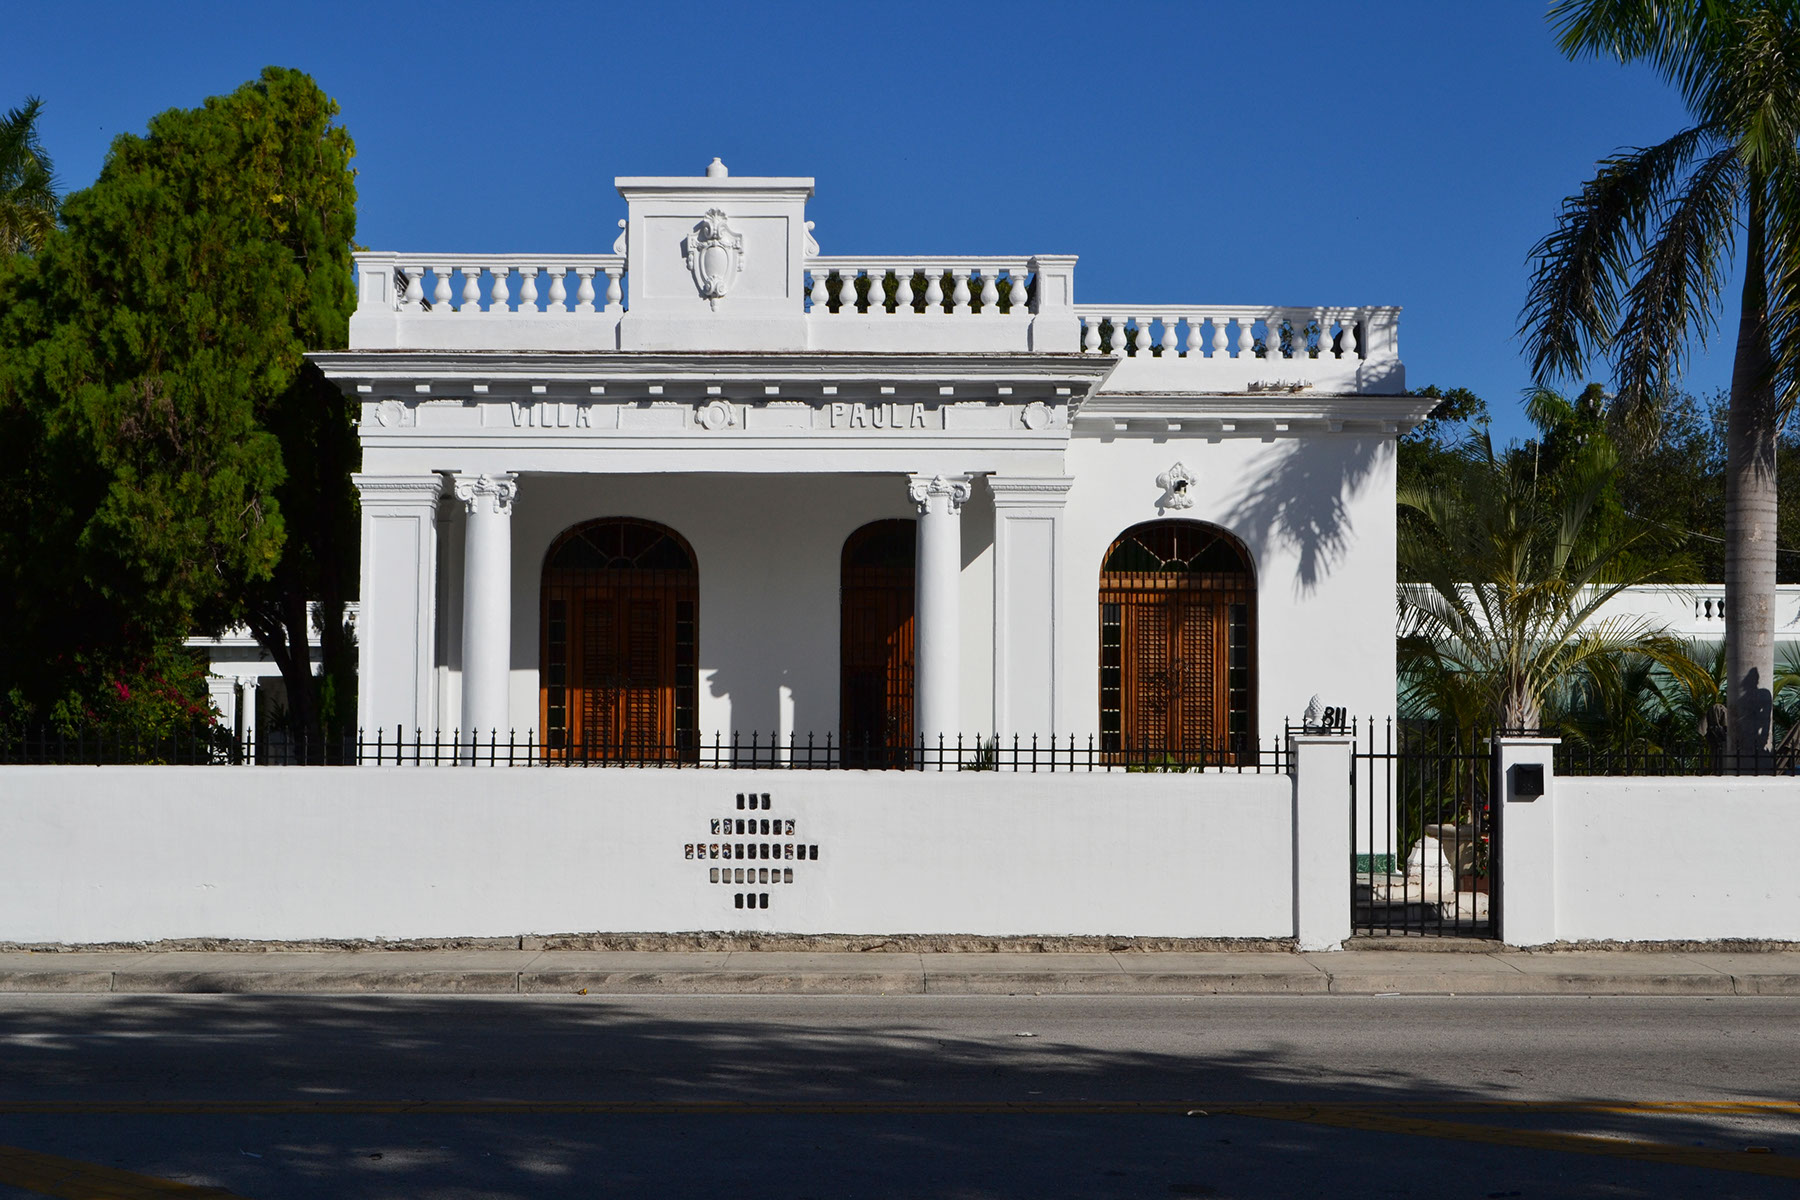 Hauntings at Villa Paula . Miami Ghost Tours